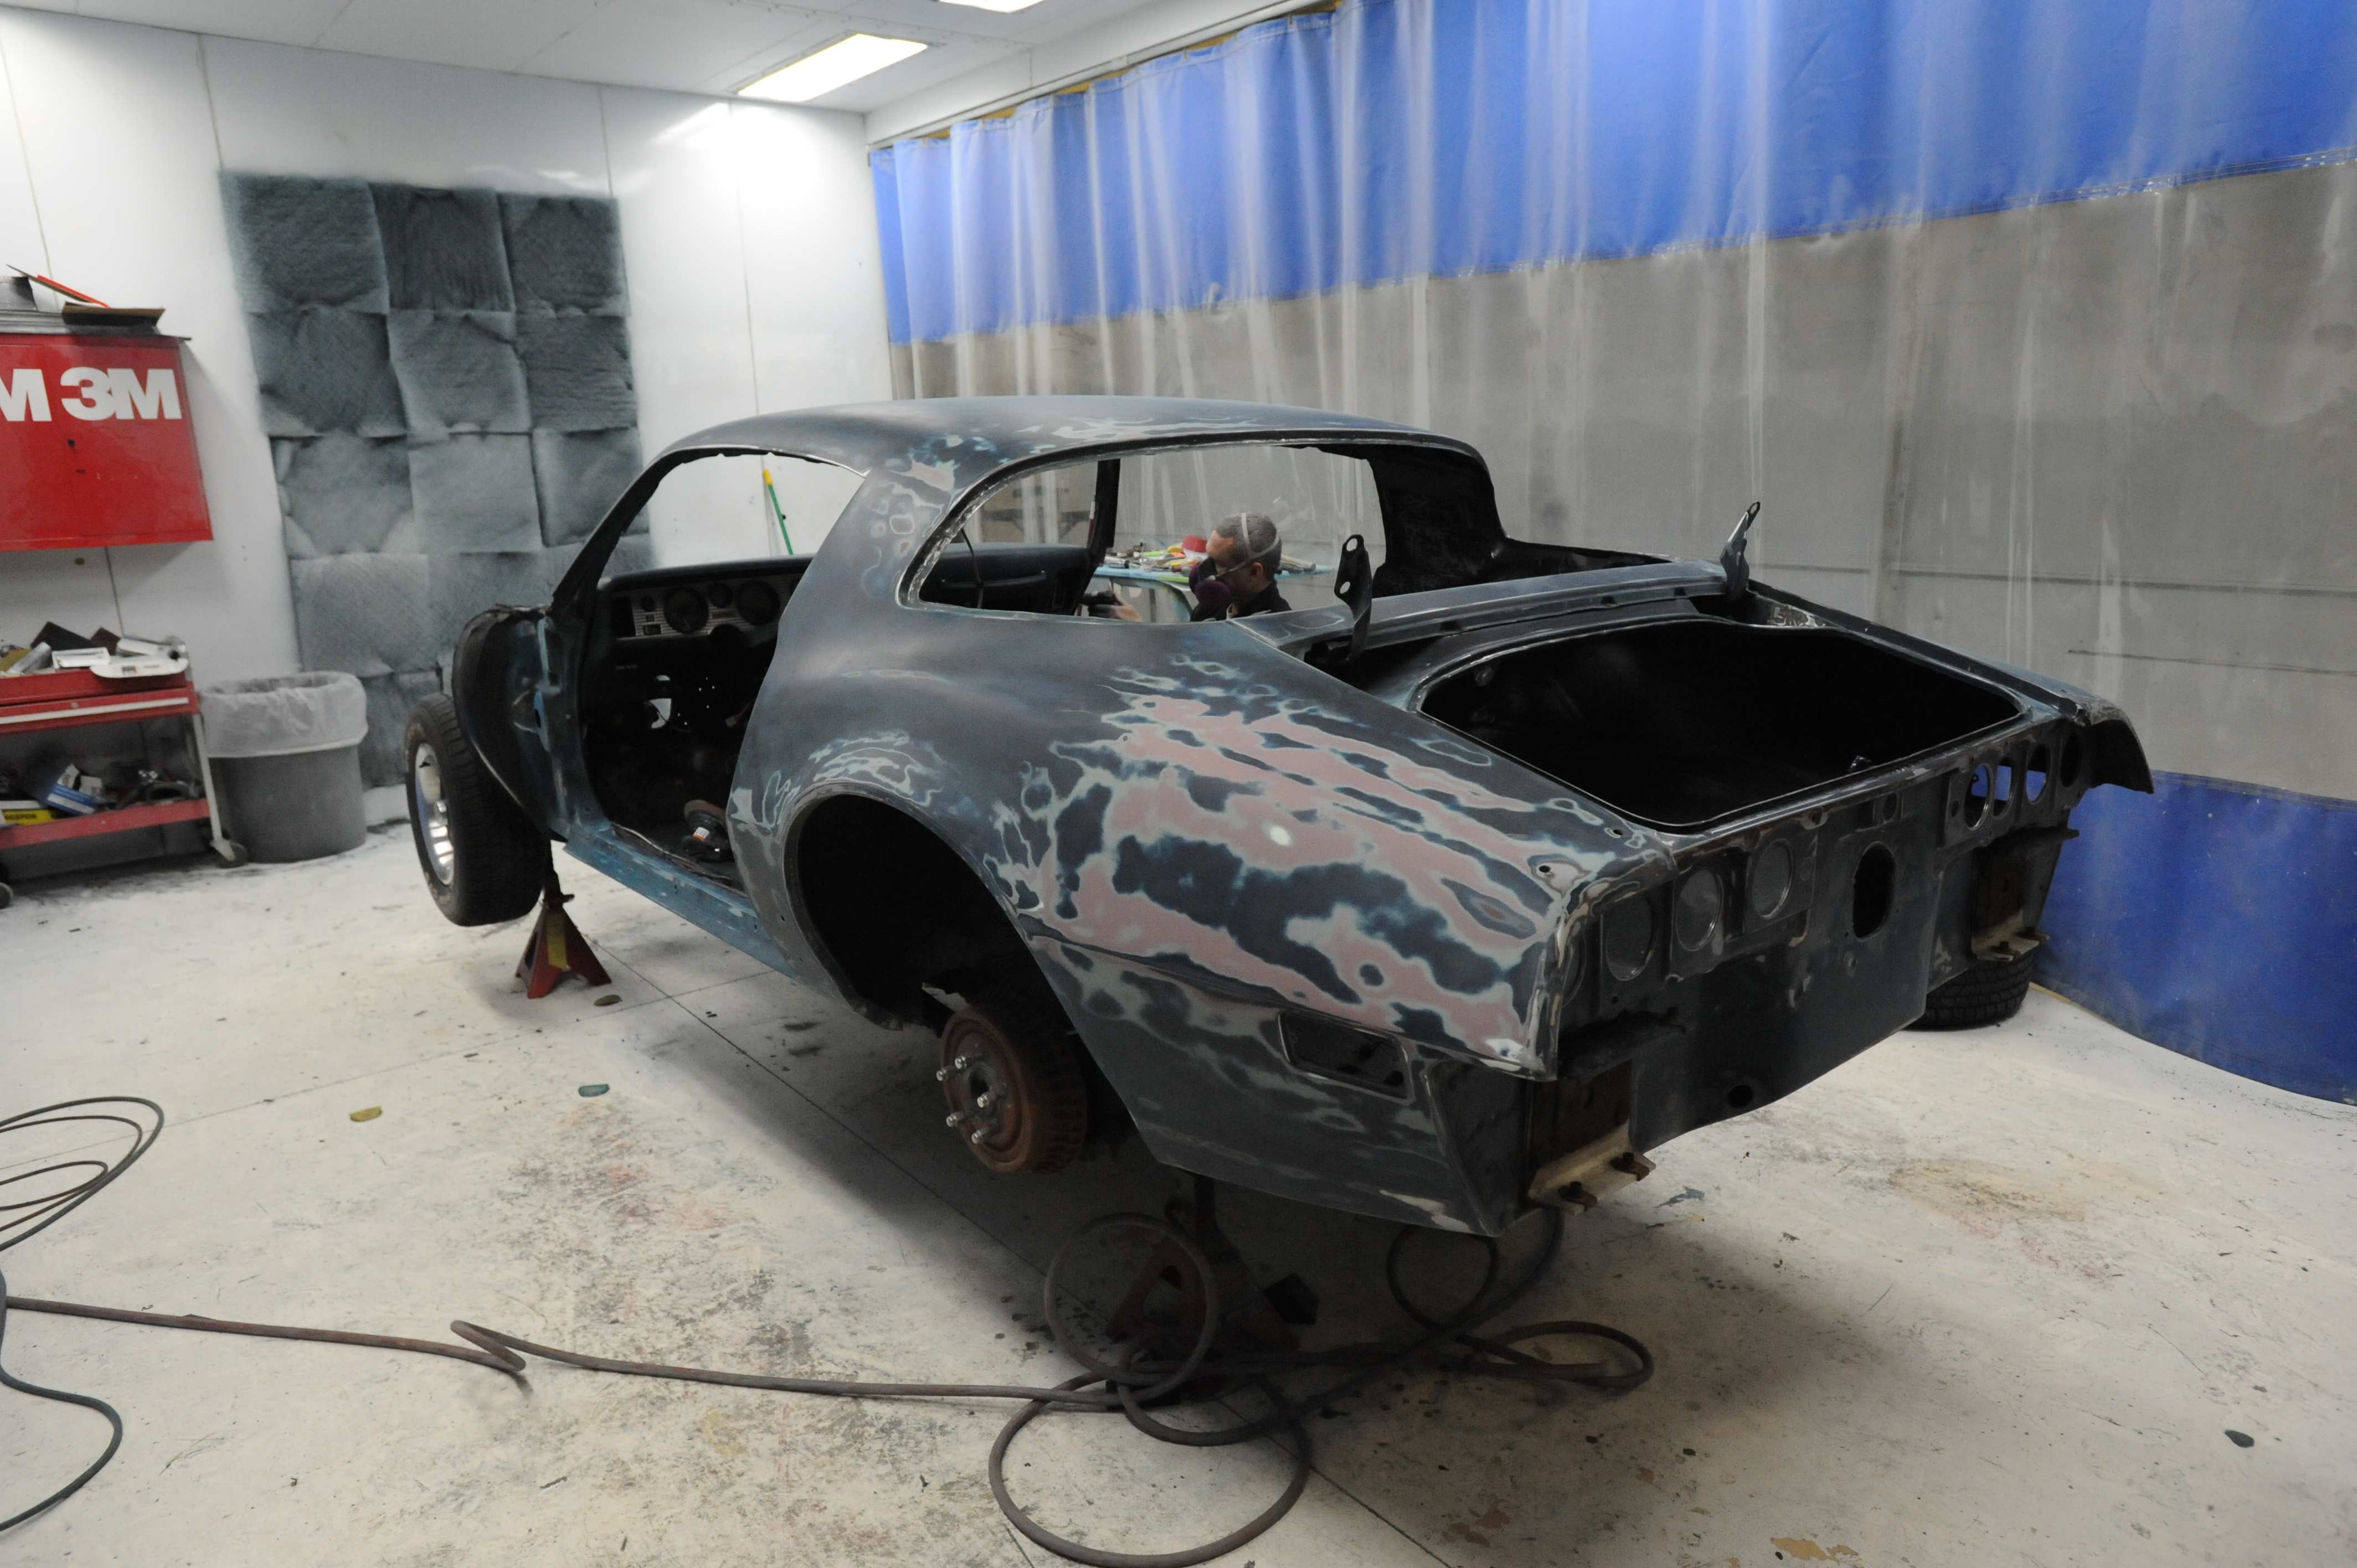 1975 Pontiac Trans Am Build Deconstruction Rk Motors Classic When Building Or Restoring A Car Its Absolutely Essential To Have Plan All The Good Intentions In World Wont Make Up For Lack Of